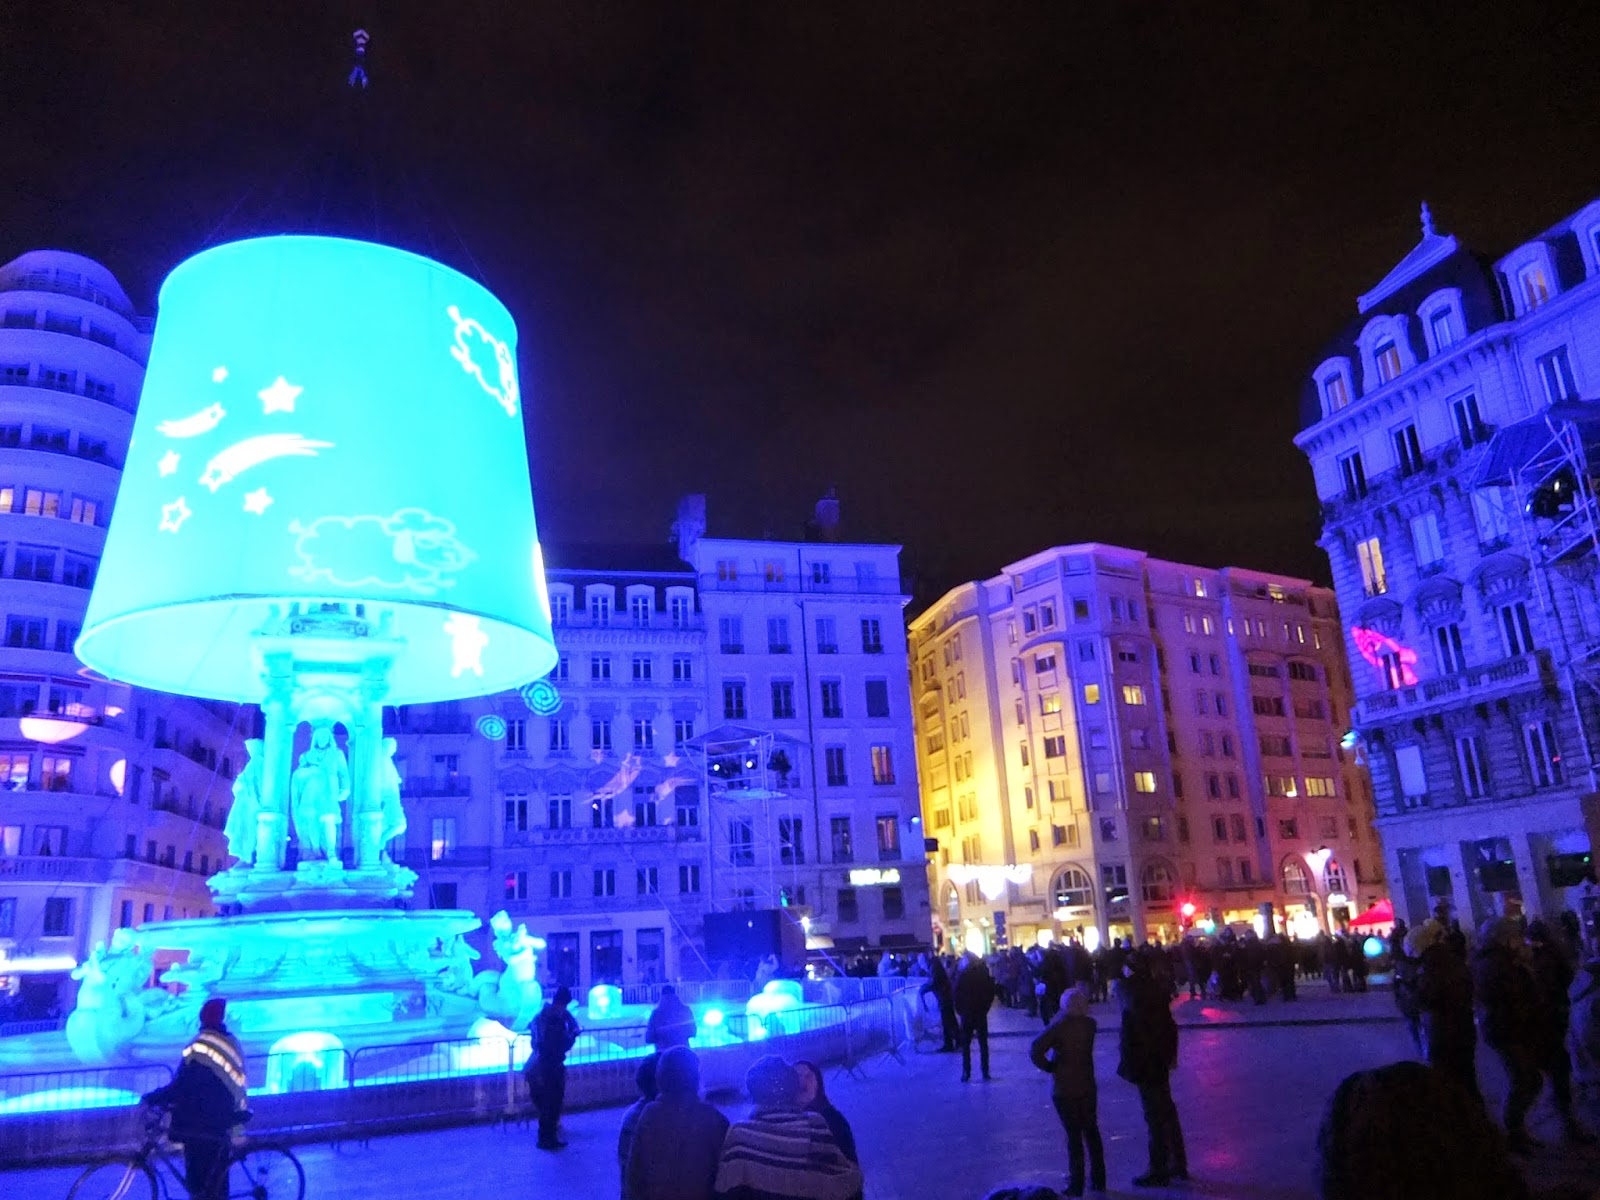 lyon fete des lumieries festival of light liquidgrain liquid grain france